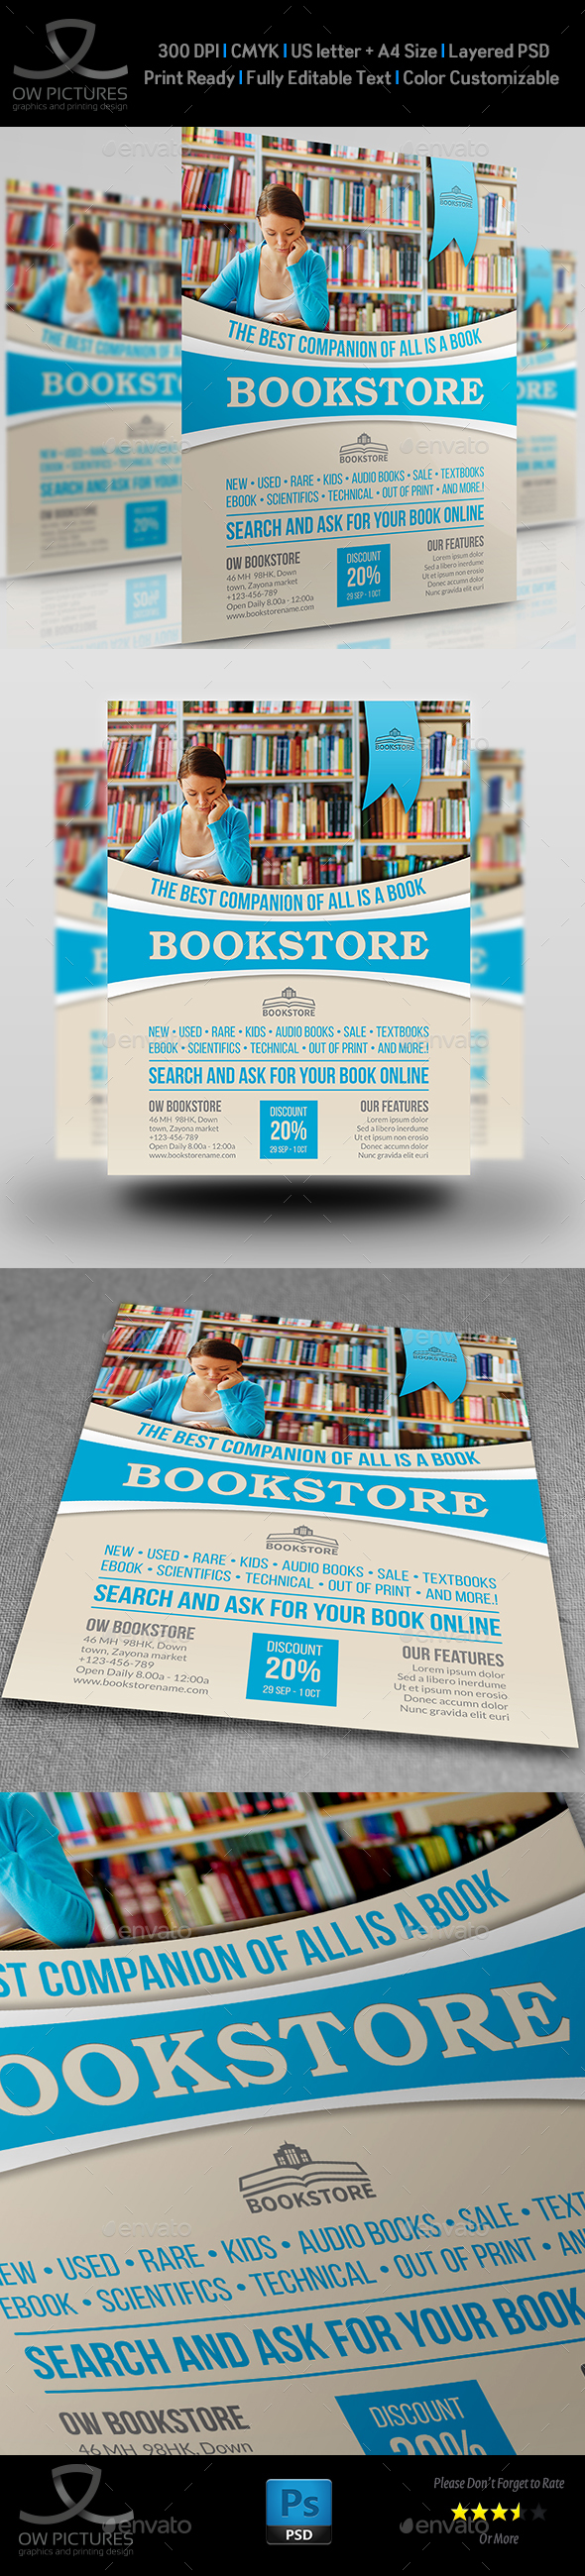 Bookstore Flyer Template - Flyers Print Templates